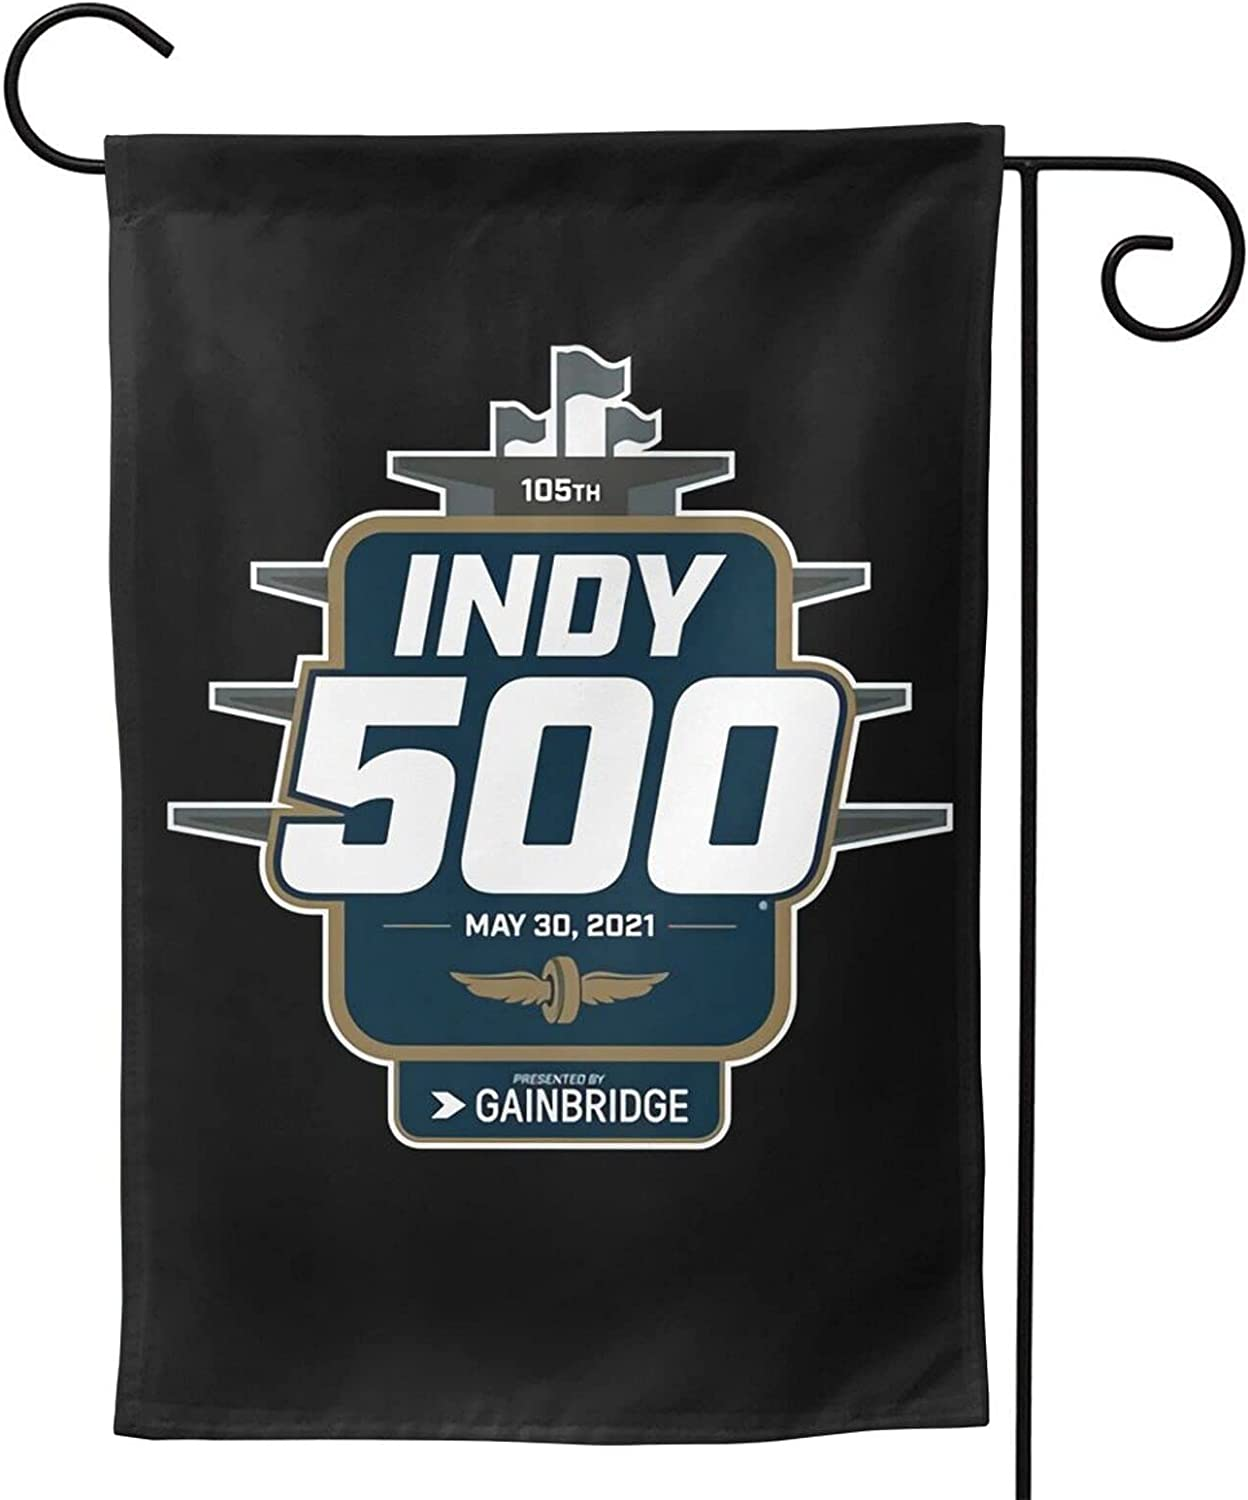 YUAKUOD Indianapolis 500(Indy 500) Garden Flag Double-Sided Printing Polyester Decorative Yard Banner Holiday Flag for Party Outdoor Decoration Home Decor 28